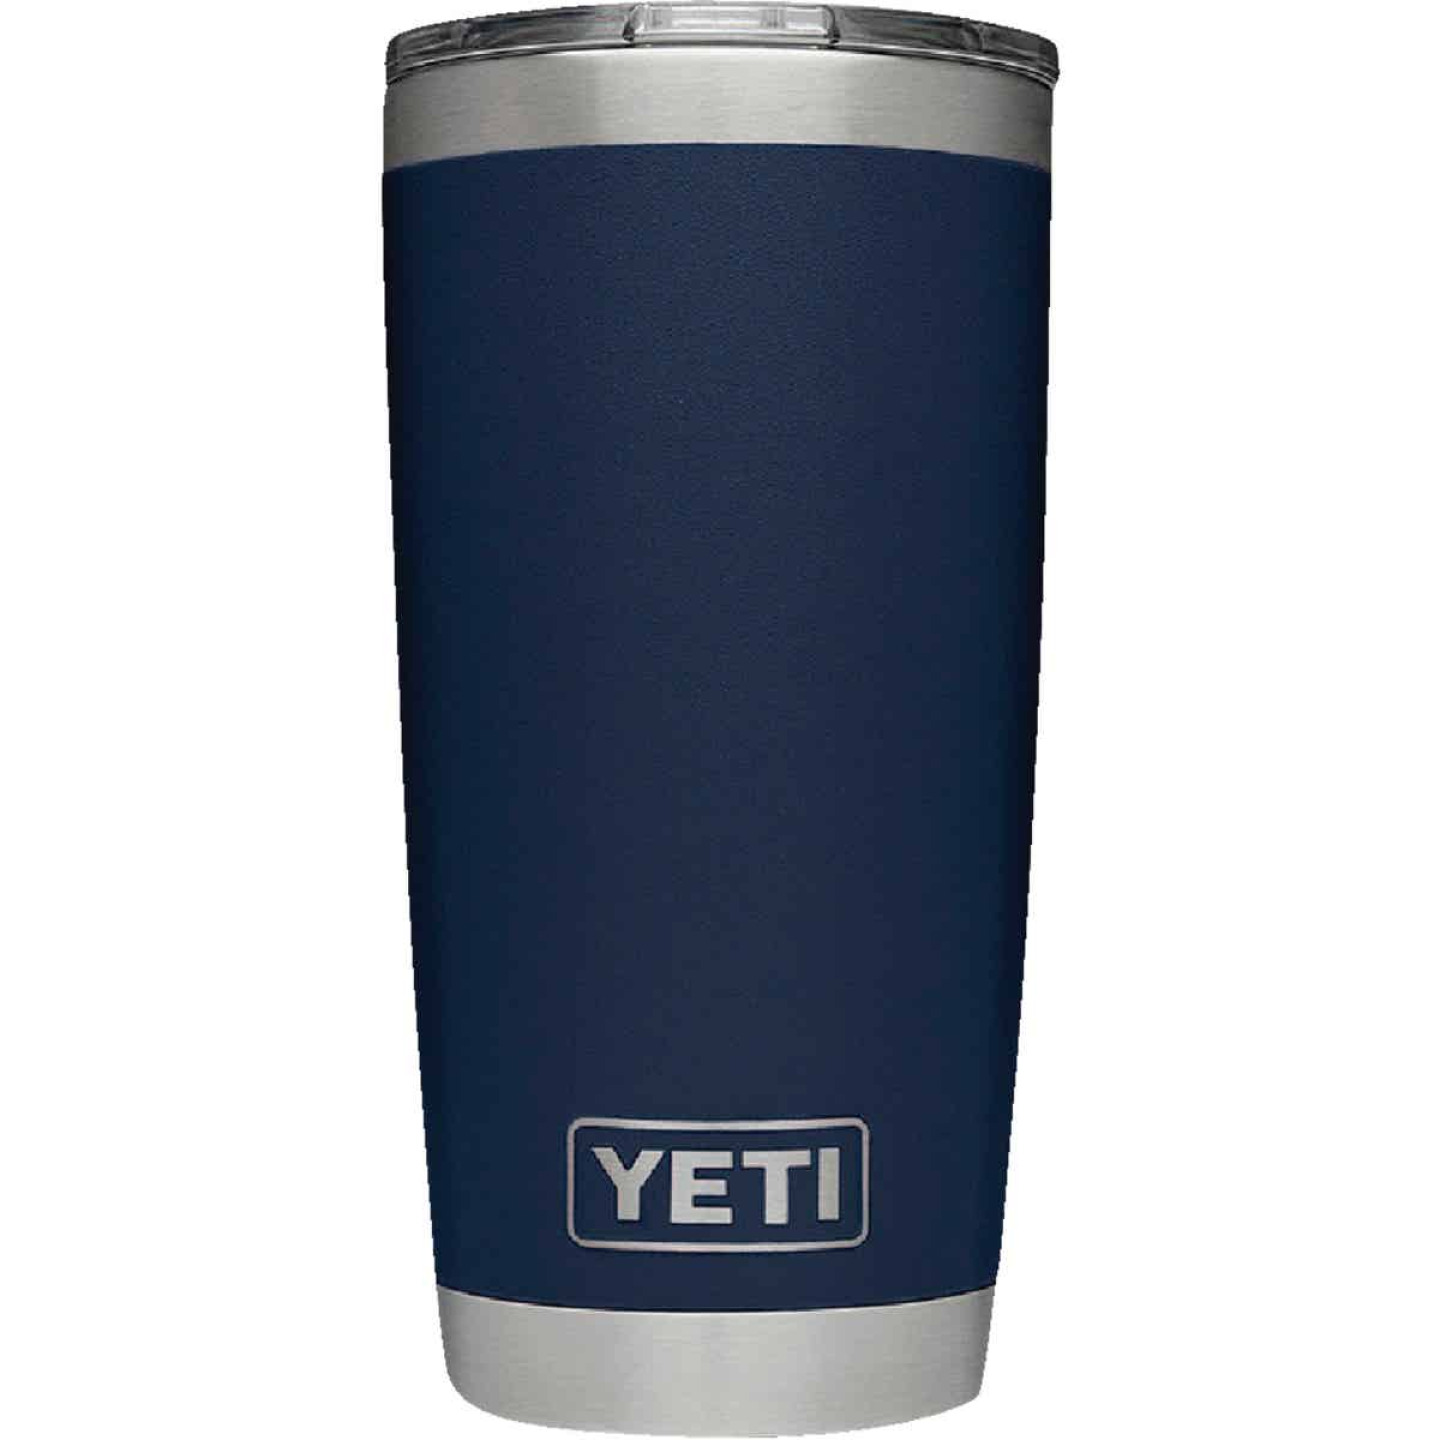 Yeti Rambler 20 Oz. Navy Blue Stainless Steel Insulated Tumbler with MagSlider Lid Image 3